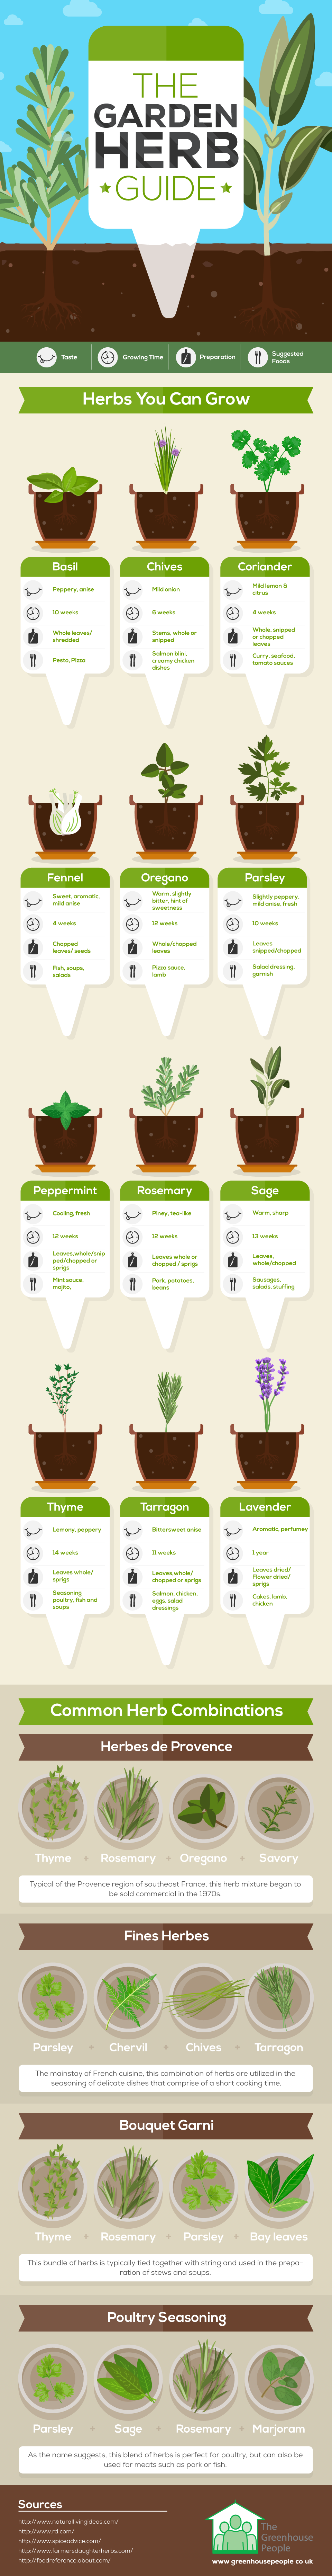 The herb garden guide